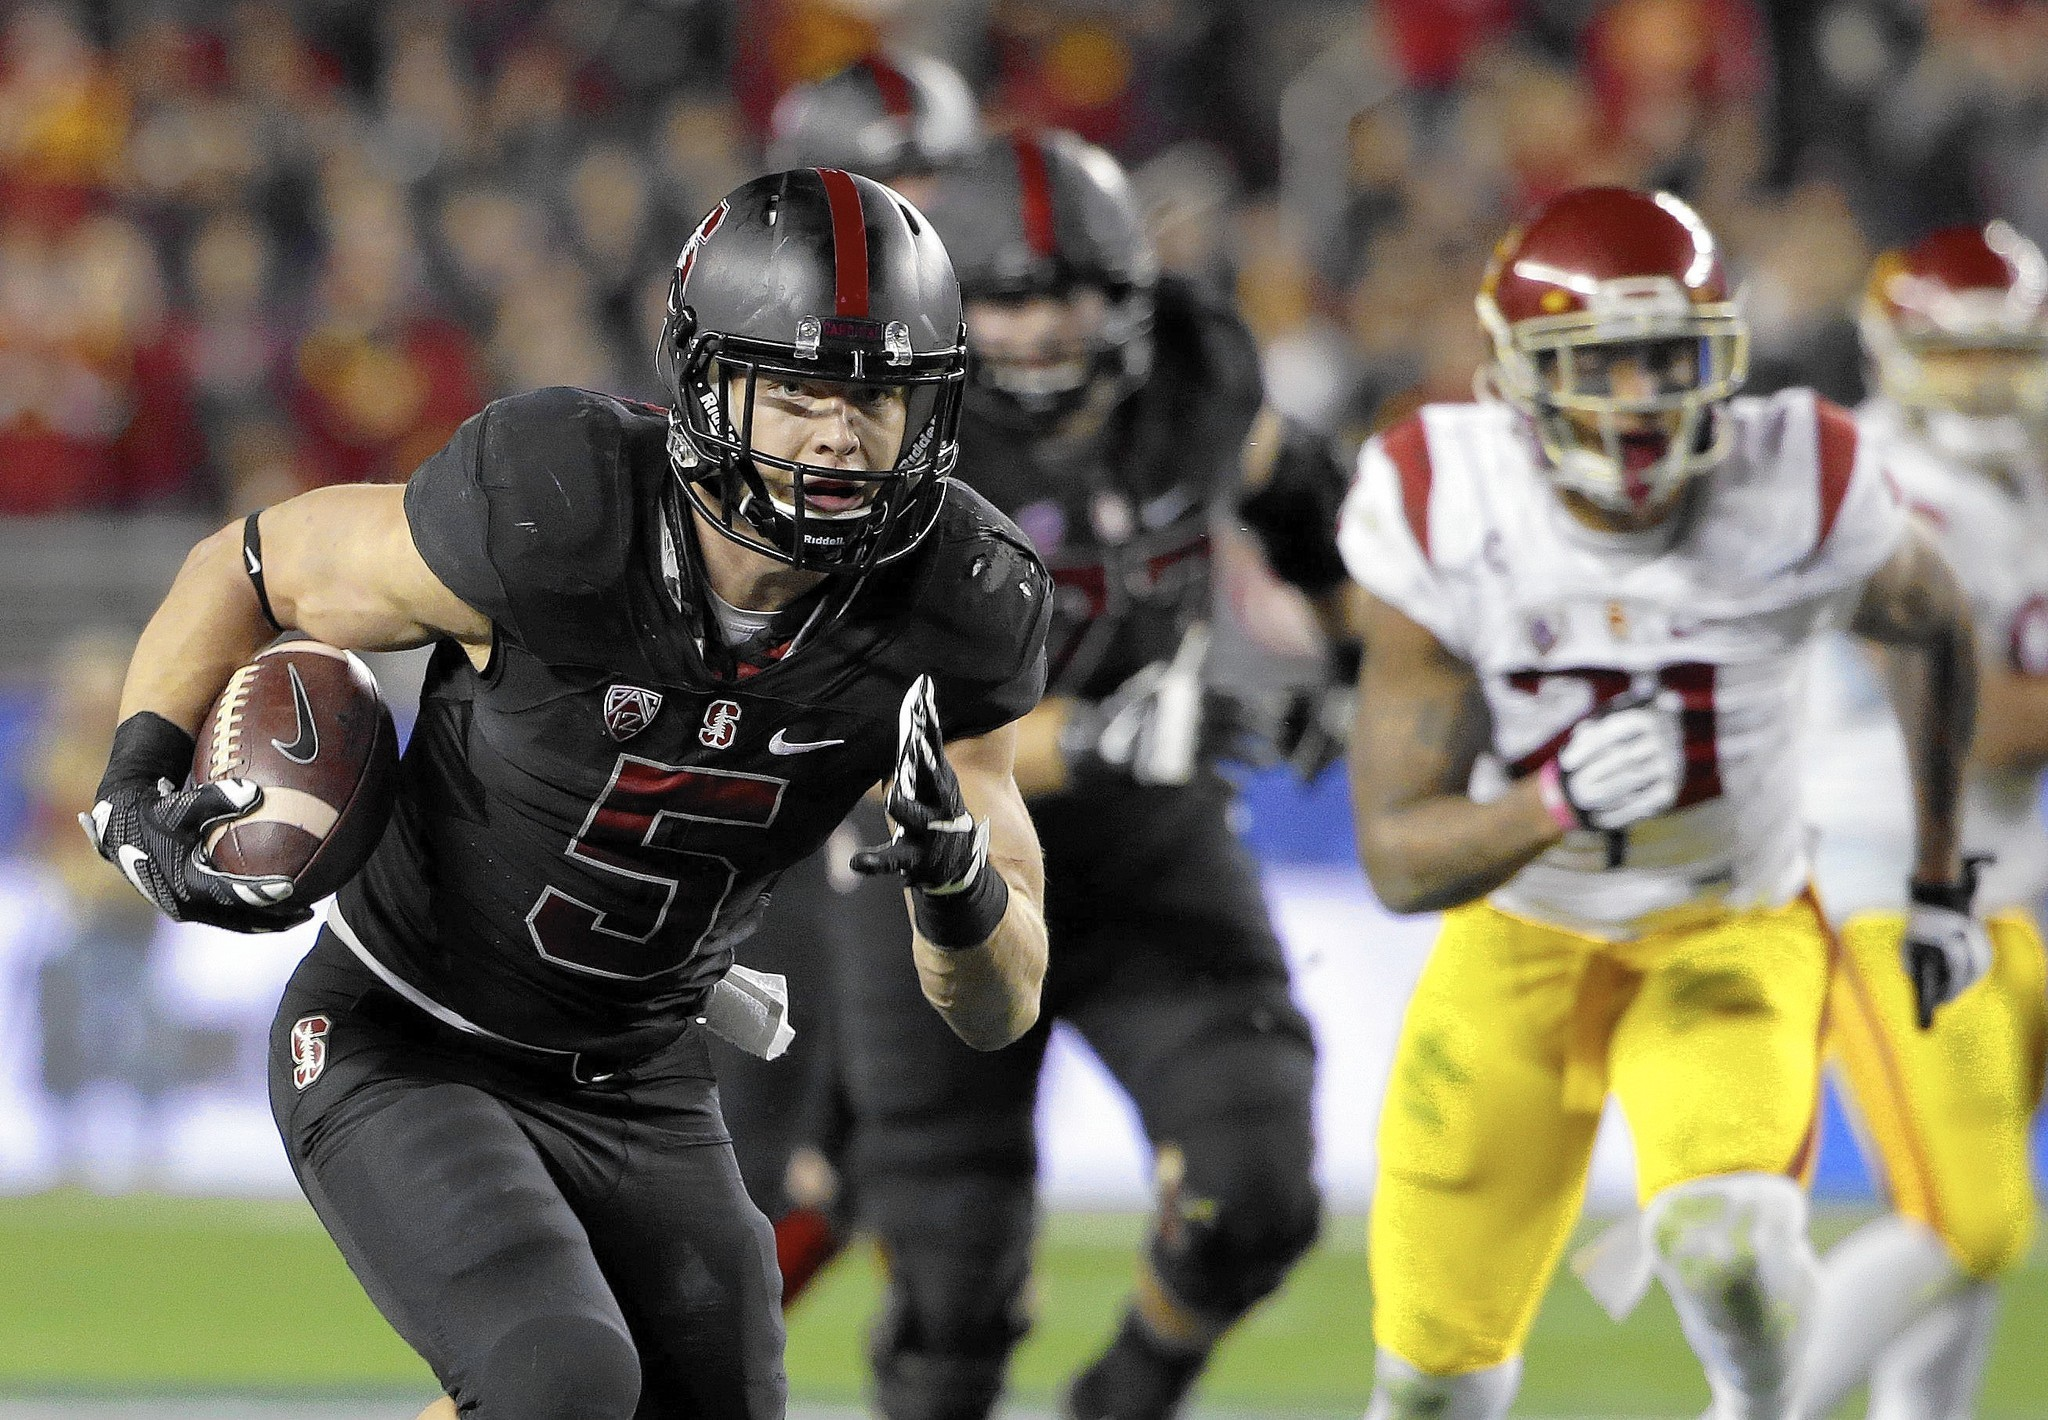 Christian Mccaffrey Makes History As Stanford Wins The Pac 12